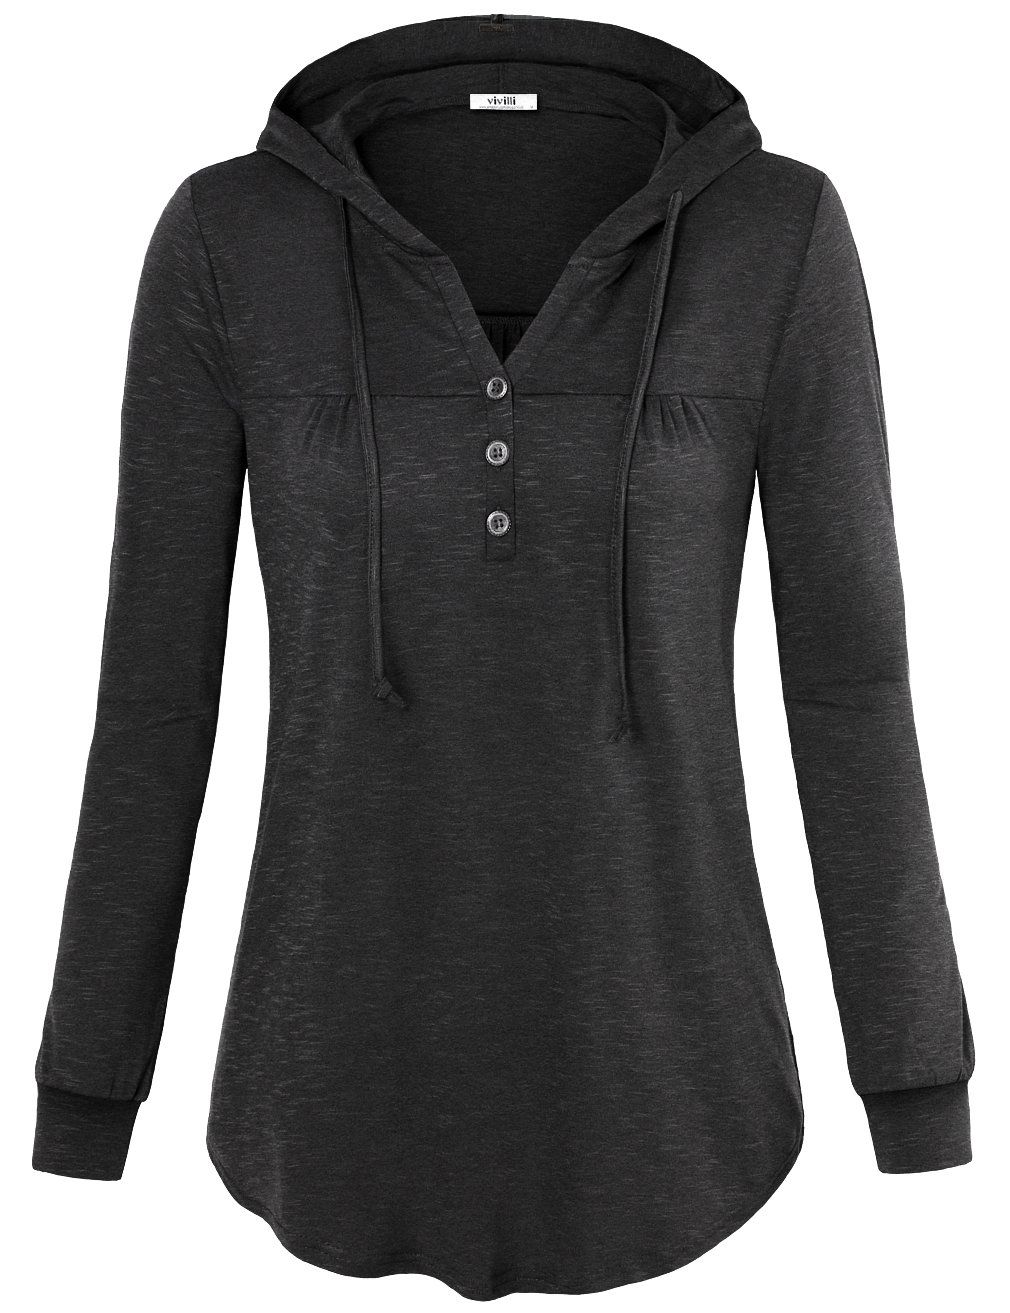 Vivilli Ladies Hooded Sweatshirts, Junior Long Sleeve Tops Loose Pullover Hooded Sweatshirt with Buttons Charcoal Black X-Large